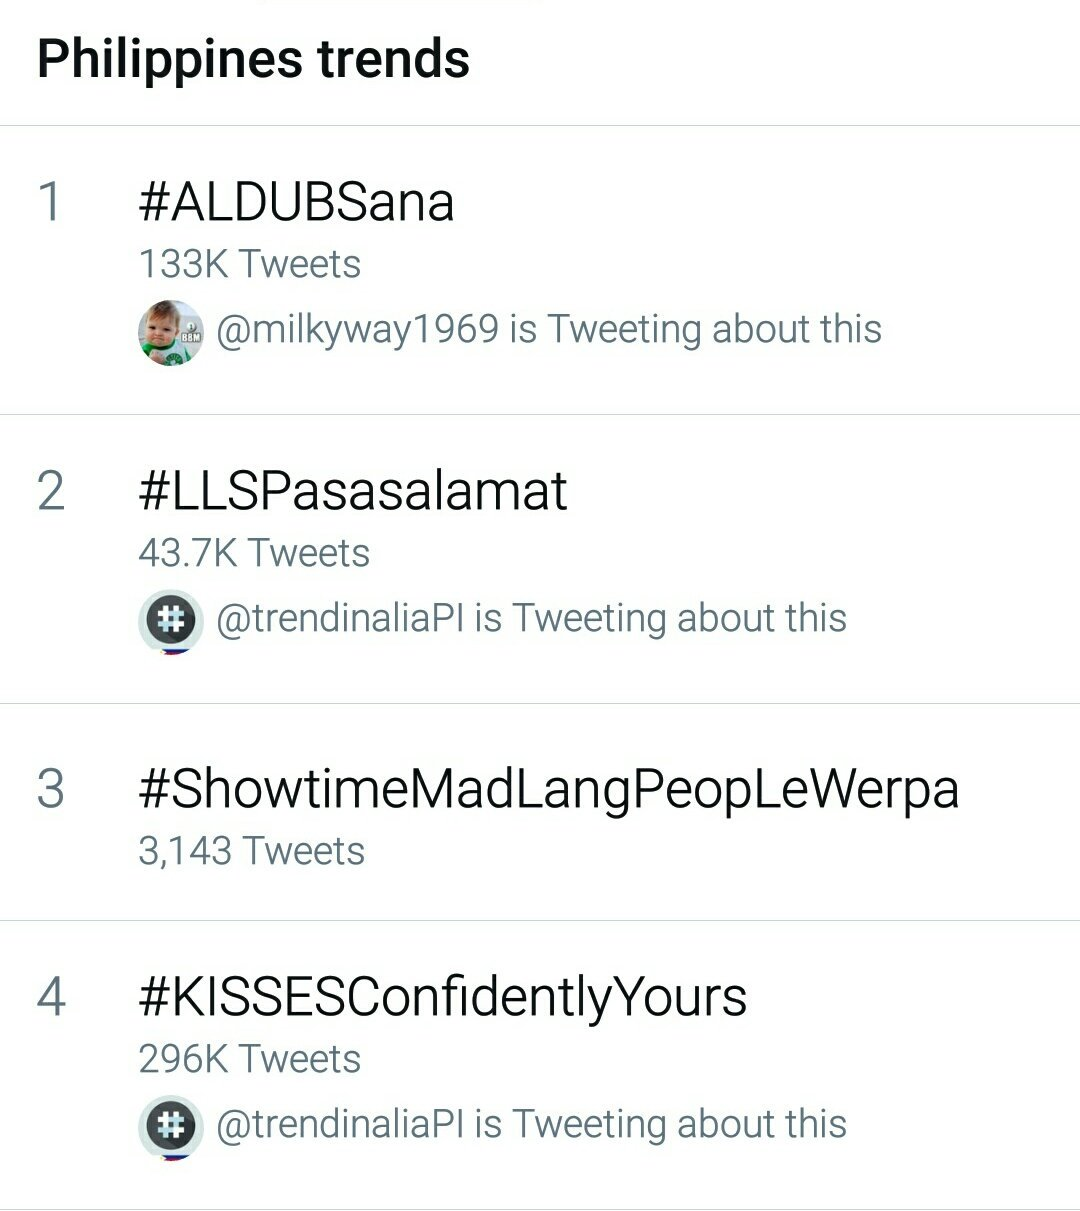 You know it EB and GMA. ALDUB can really dominate ratings and trends. #ALDUBSana https://t.co/oYZ0Jsjgeb